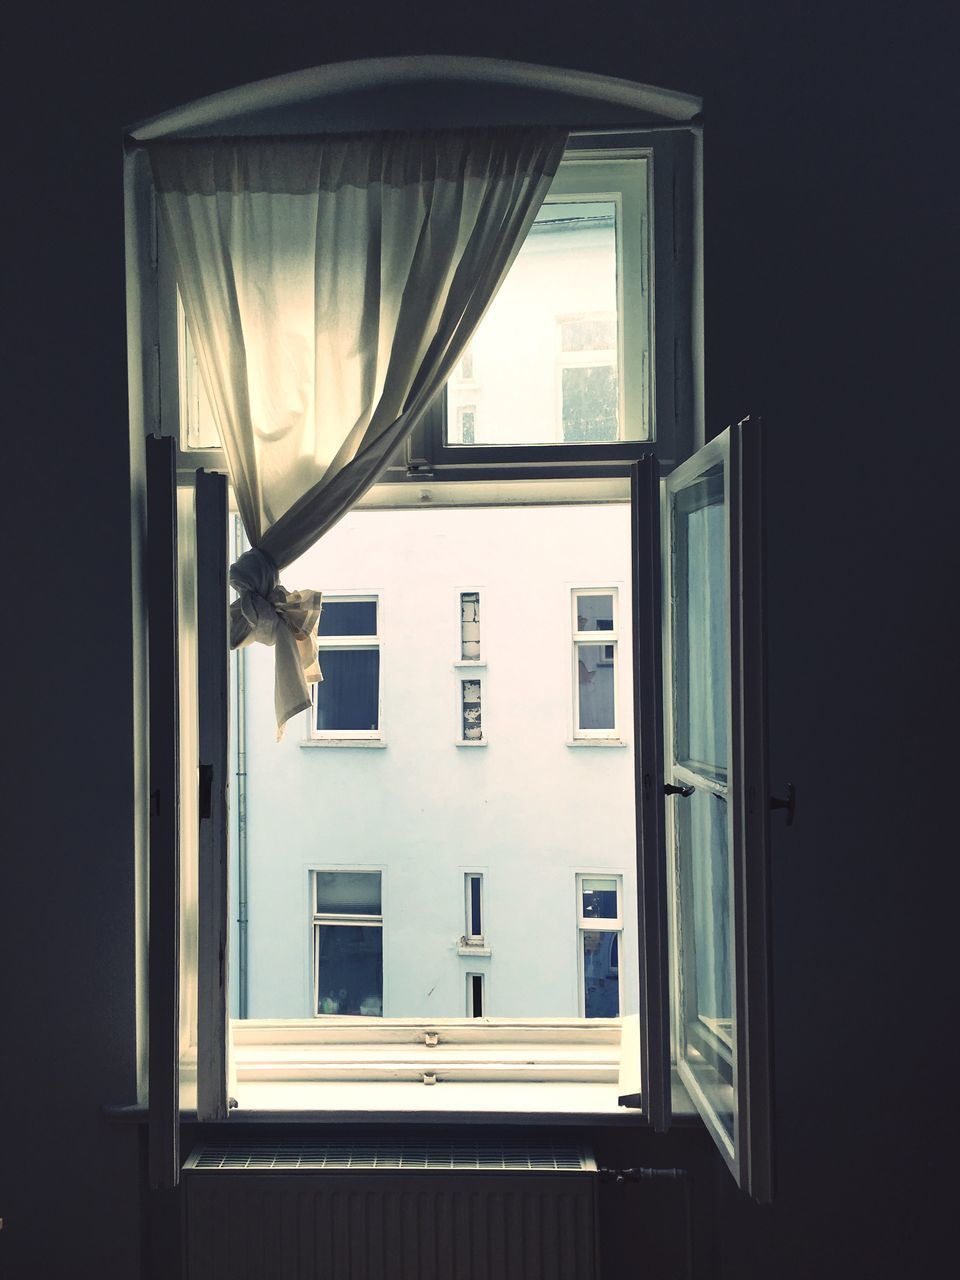 window, door, indoors, no people, curtain, architecture, built structure, day, building exterior, close-up